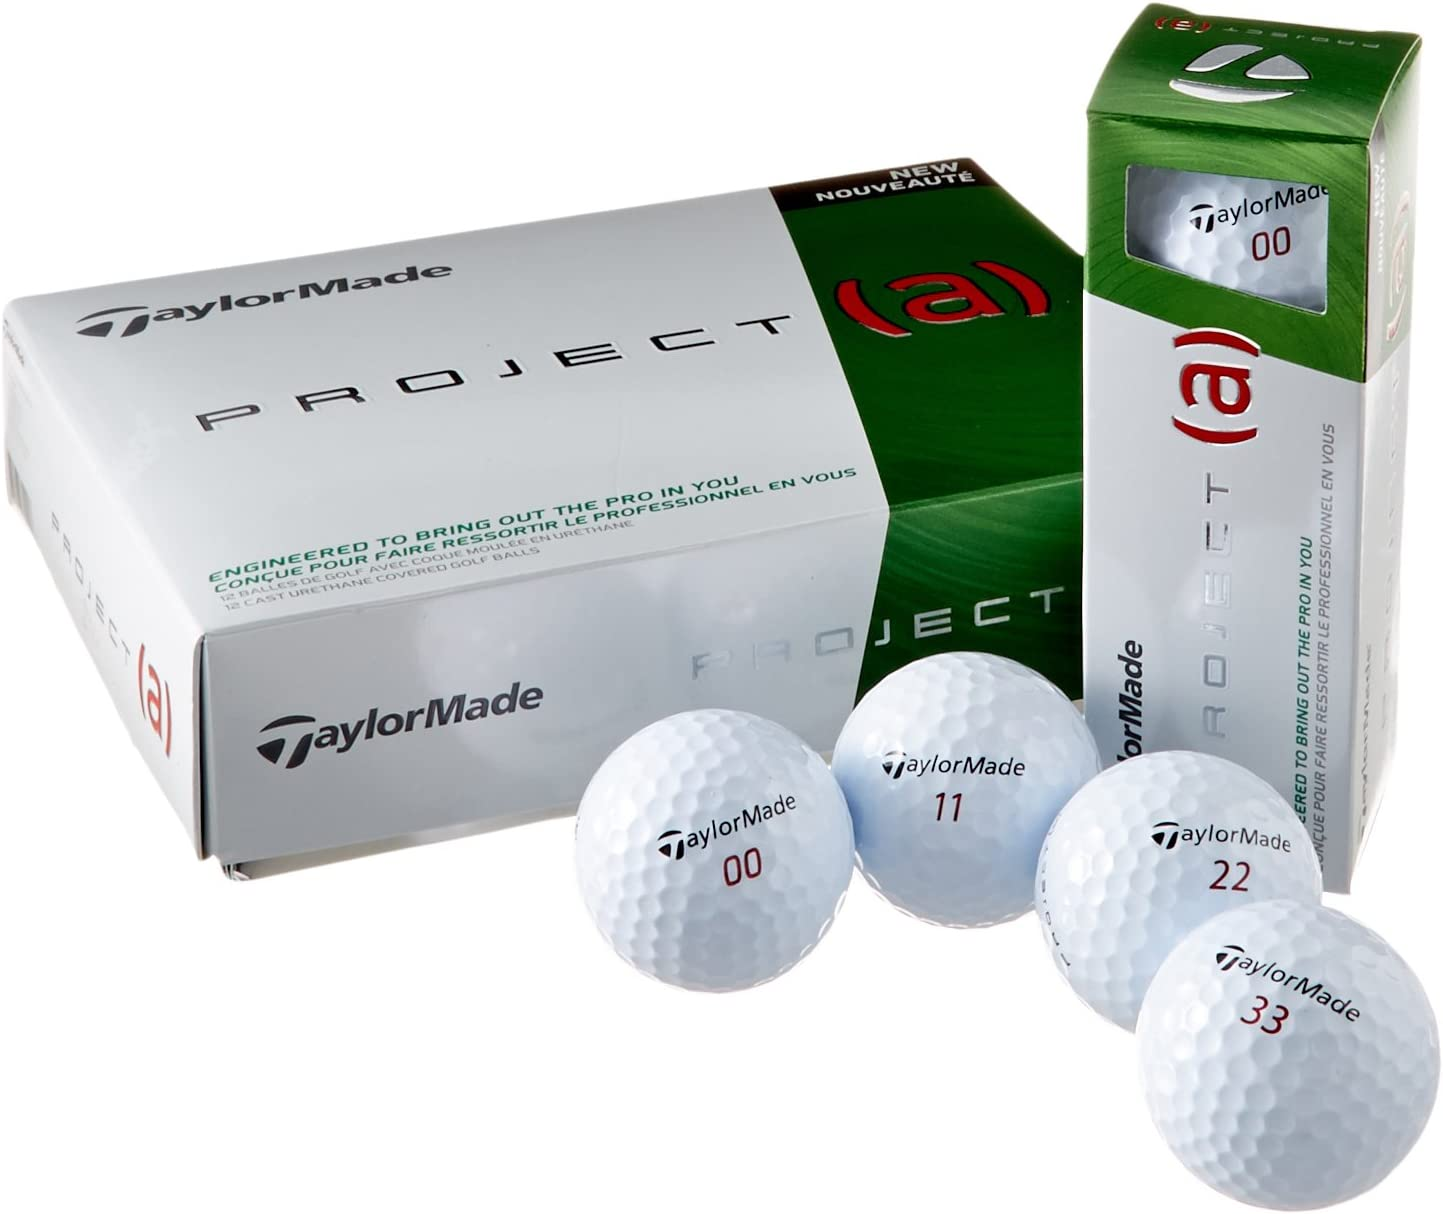 TaylorMade Max 60% OFF 2014 Sale Special Price Project a Balls - Golf White